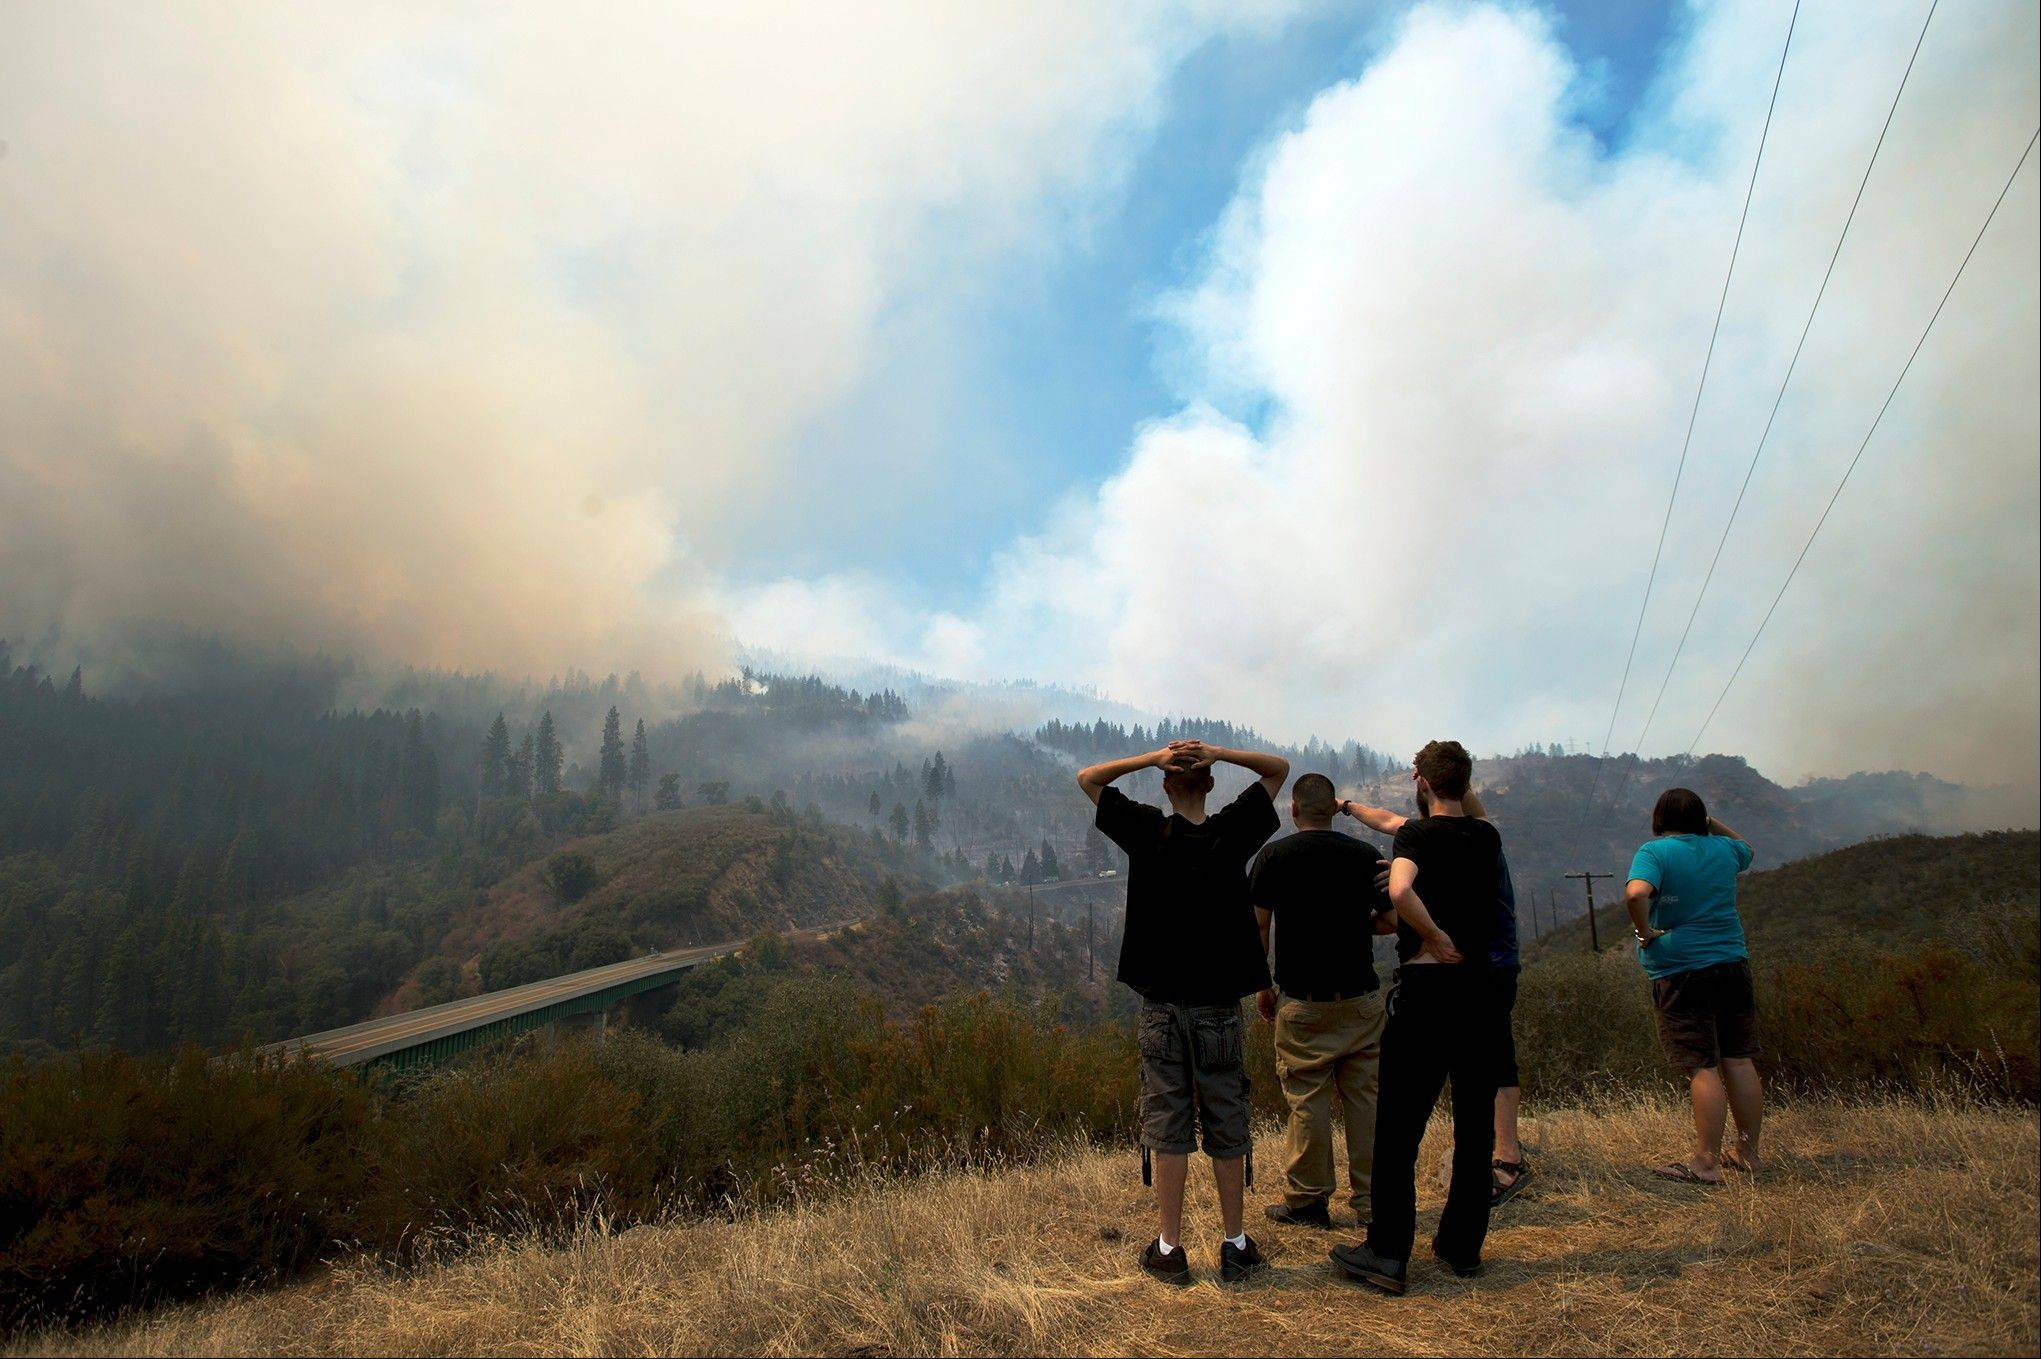 Friends Mike Geiser, Rene Auitia, Marcos Lopez, Ashton Humphrey and Nick Ward look out over the Tuolumne River Canyon as the Rim Fire moves east along Highway 120 in the Stanislaus National Forest Tuesday Aug. 20, 2013.